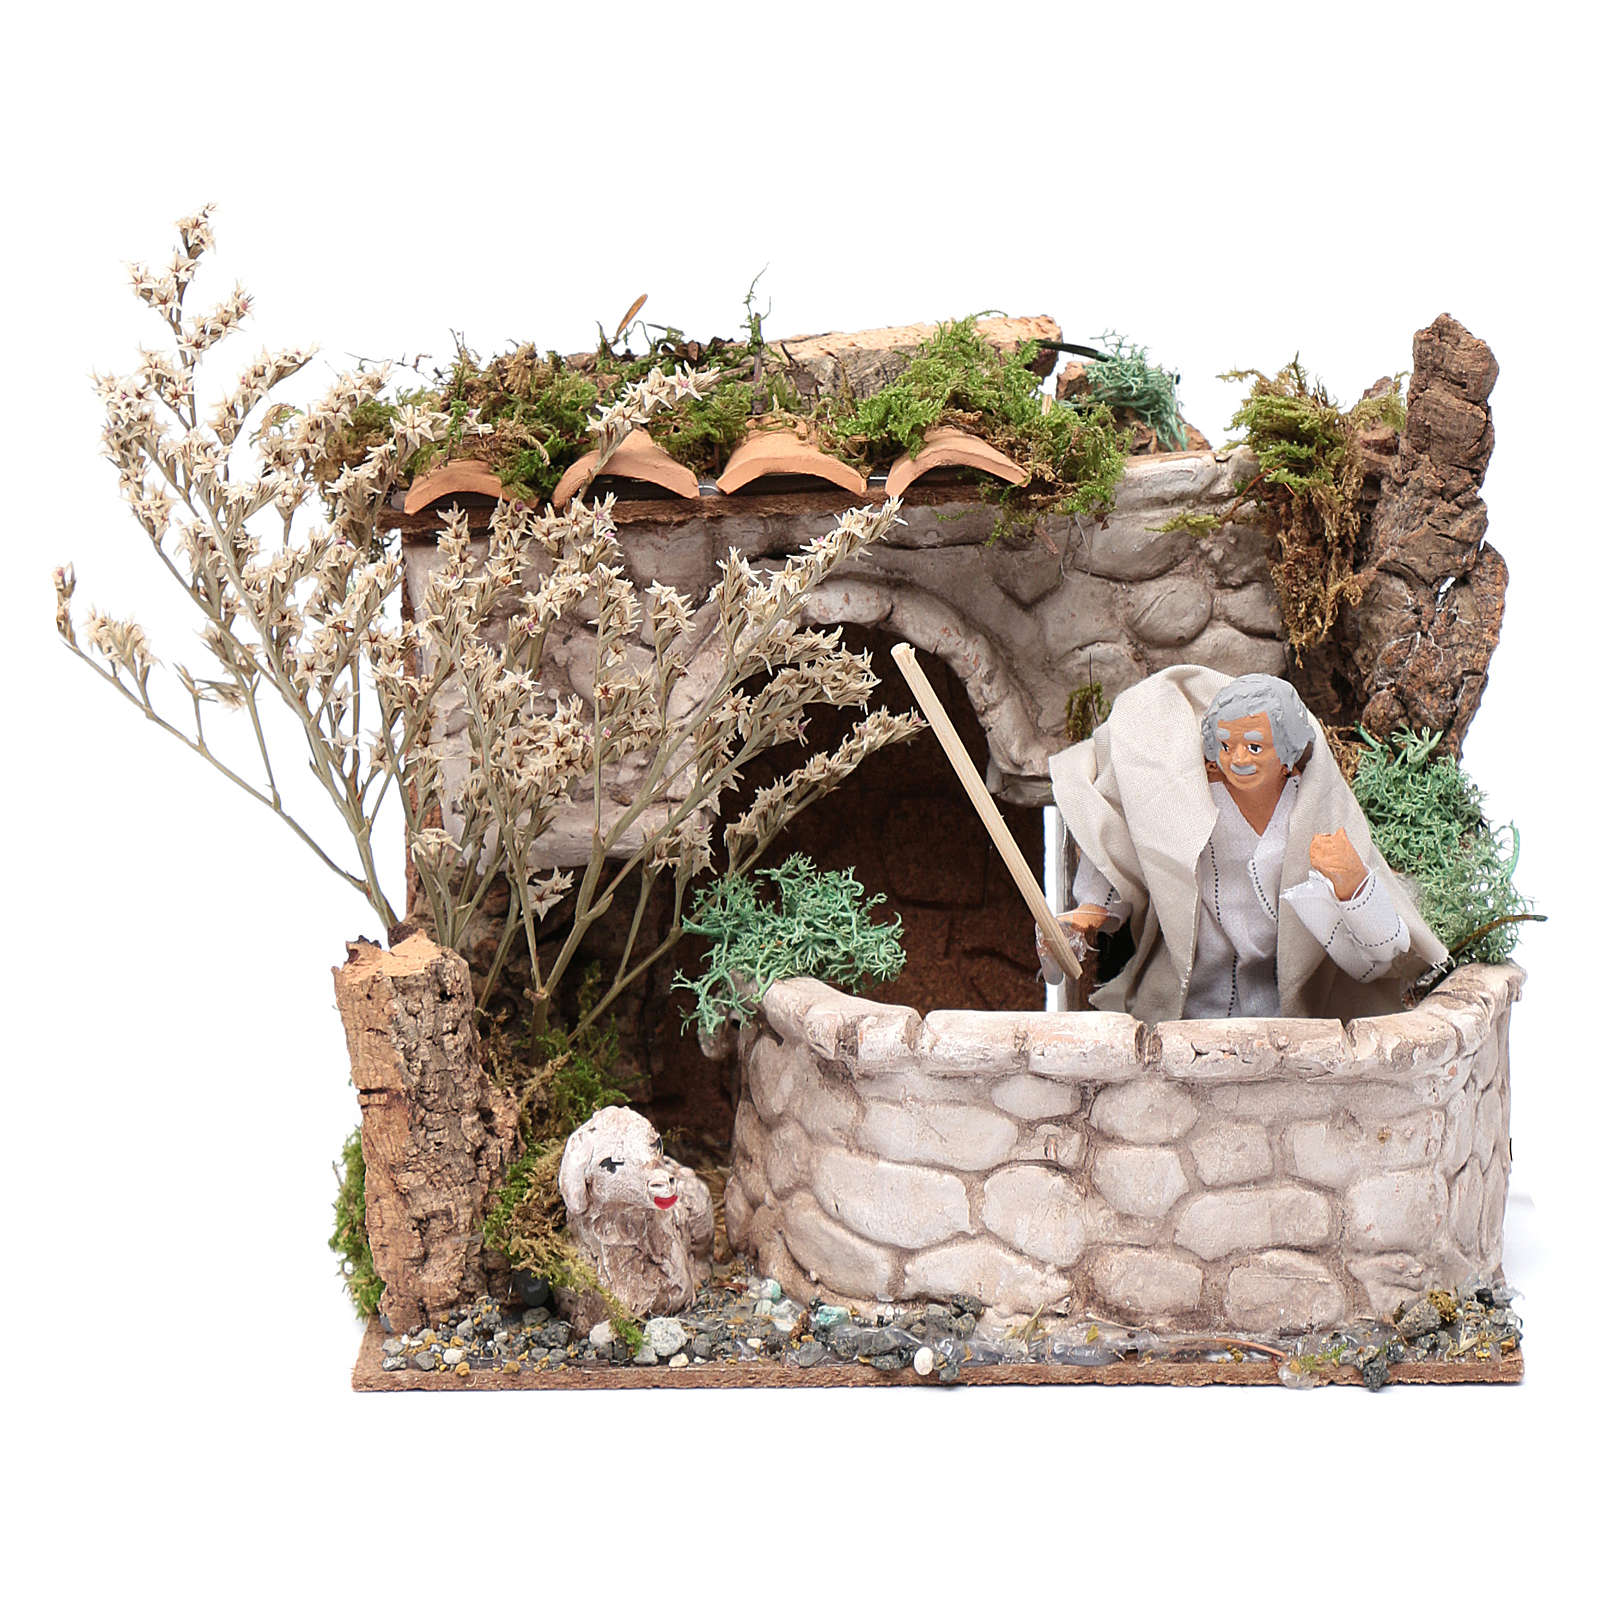 Pecoraio in movimento 15x20x15 cm per presepe 3